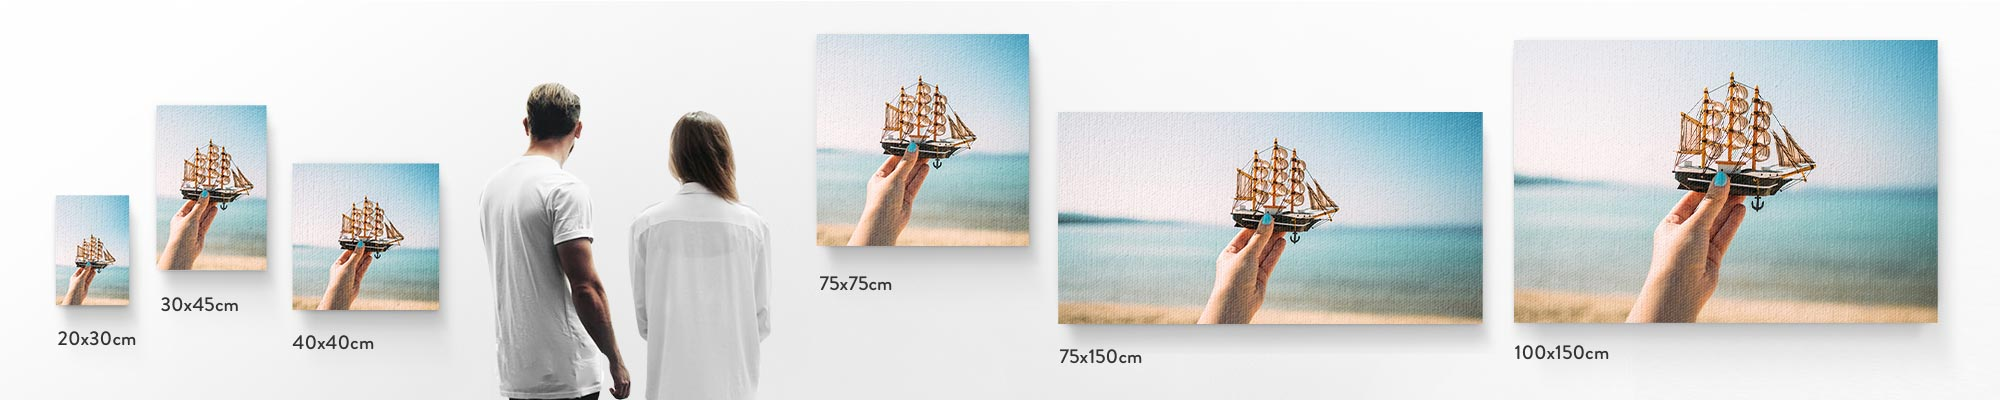 Canvas print sizes - How do we stack up? We offer a range of canvas sizes to suit your needs, space and decor. Our canvas prints are available in sizes ranging from 20x30cm-30x60cm and larger sizes between 50x75cm-100x150cm.